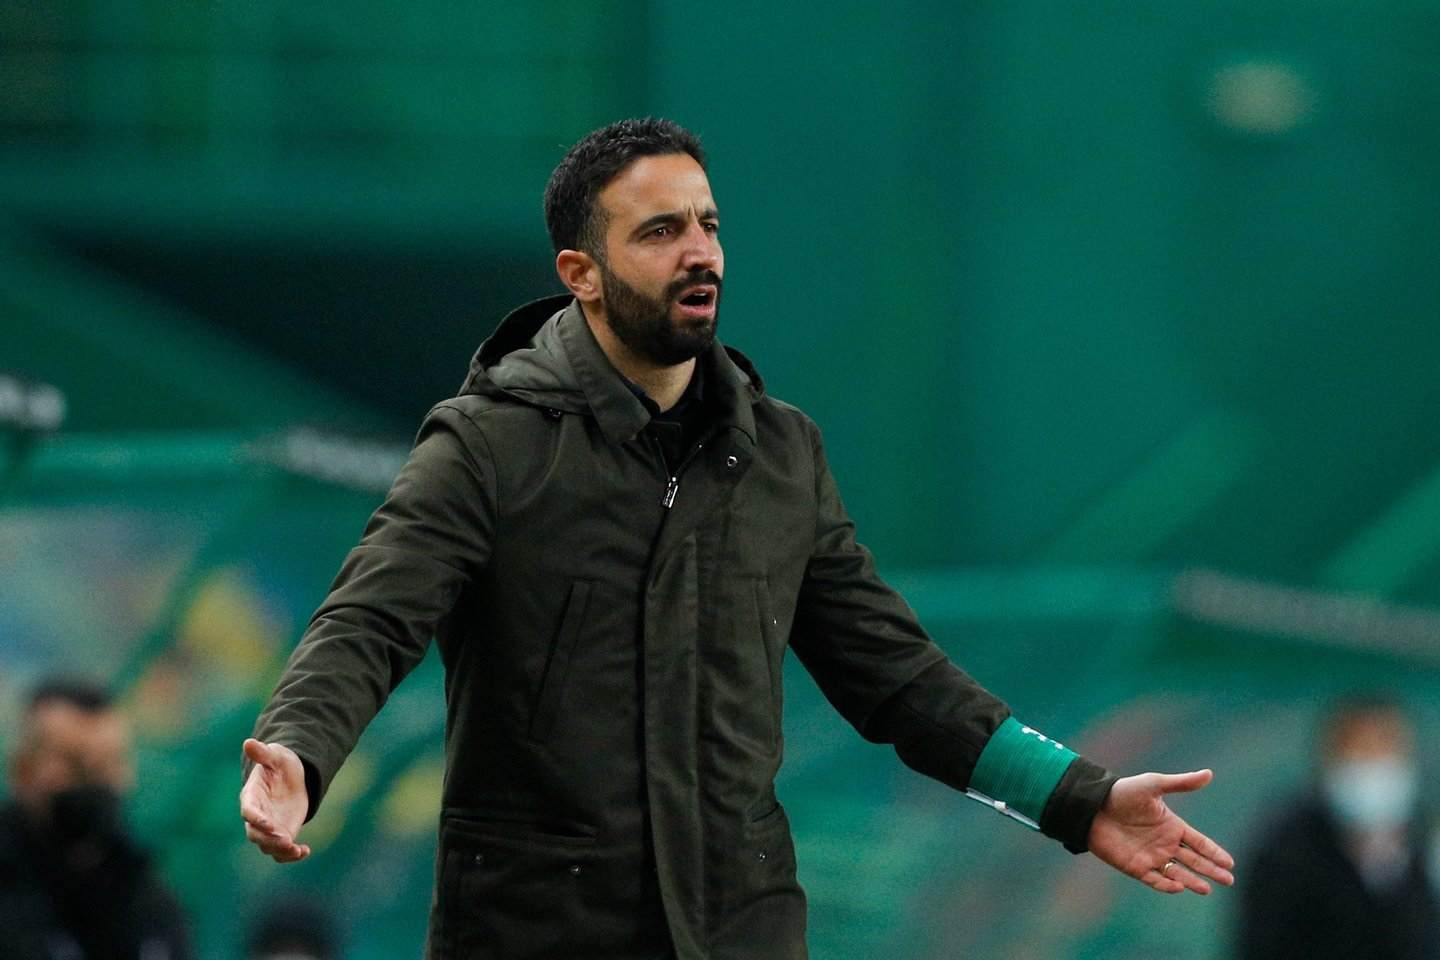 Sporting's head coach Ruben Amorim reacts during the Portuguese First League soccer match with Rio Ave held at Alvalade Stadium in Lisbon, Portugal, 15th January 2021. ANTONIO COTRIM/LUSA